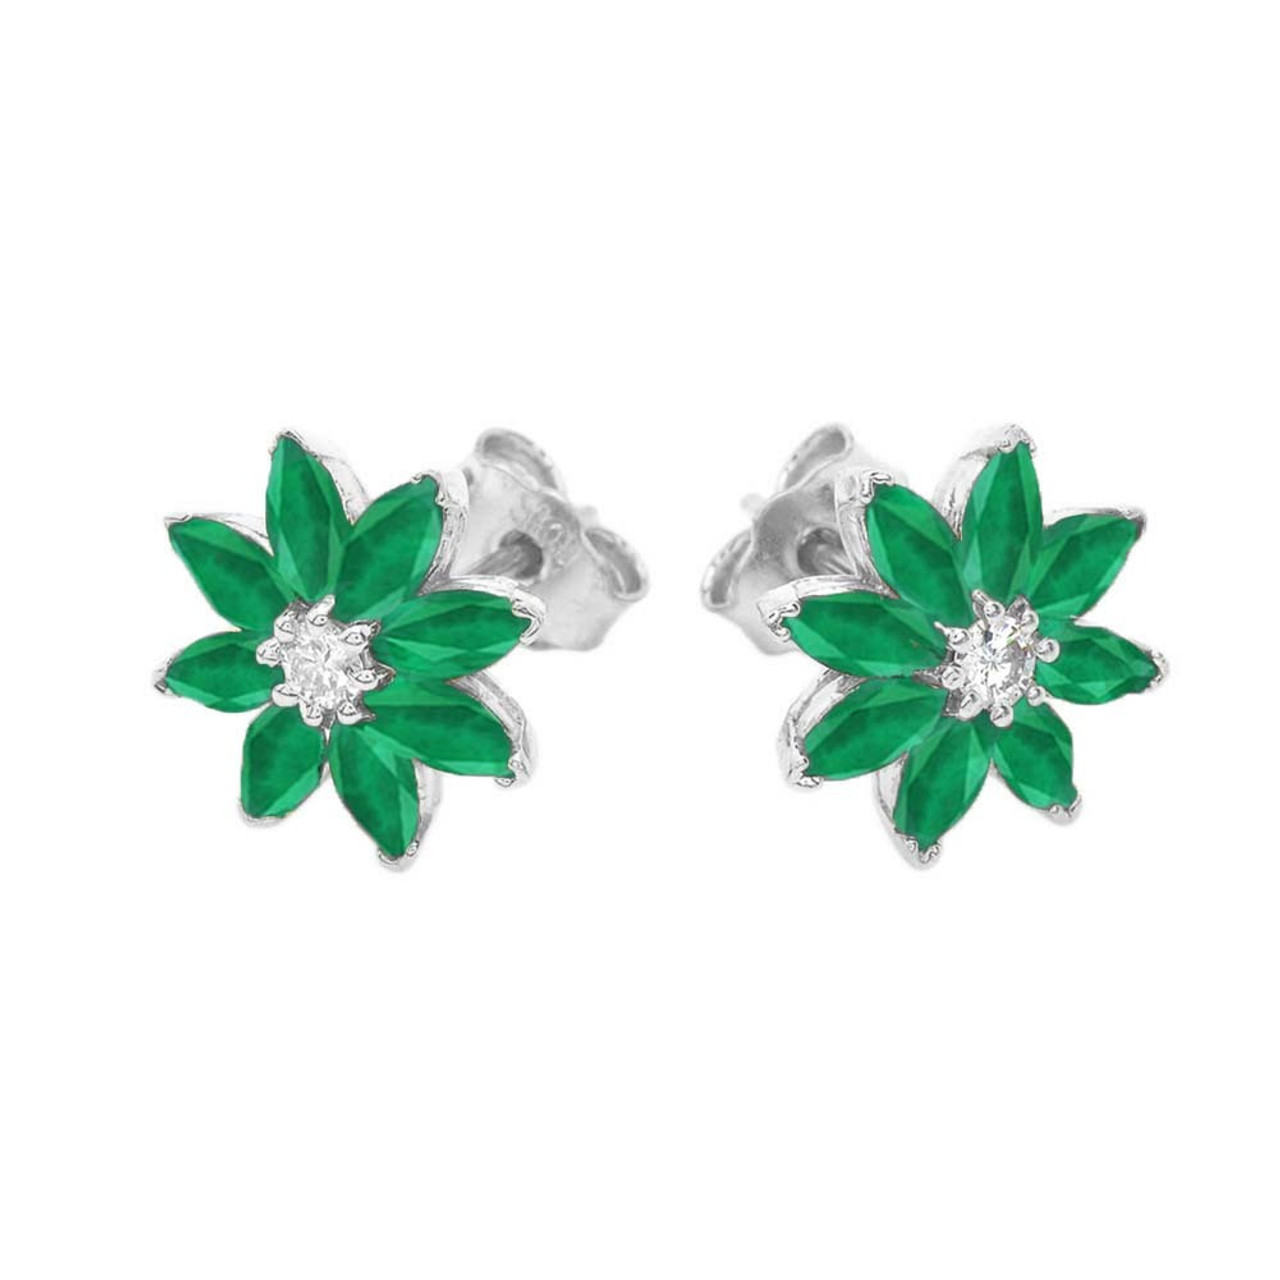 bd4f17284048c Emerald and Diamond Daisy Stud Earrings In 14k Gold (Yellow/White)